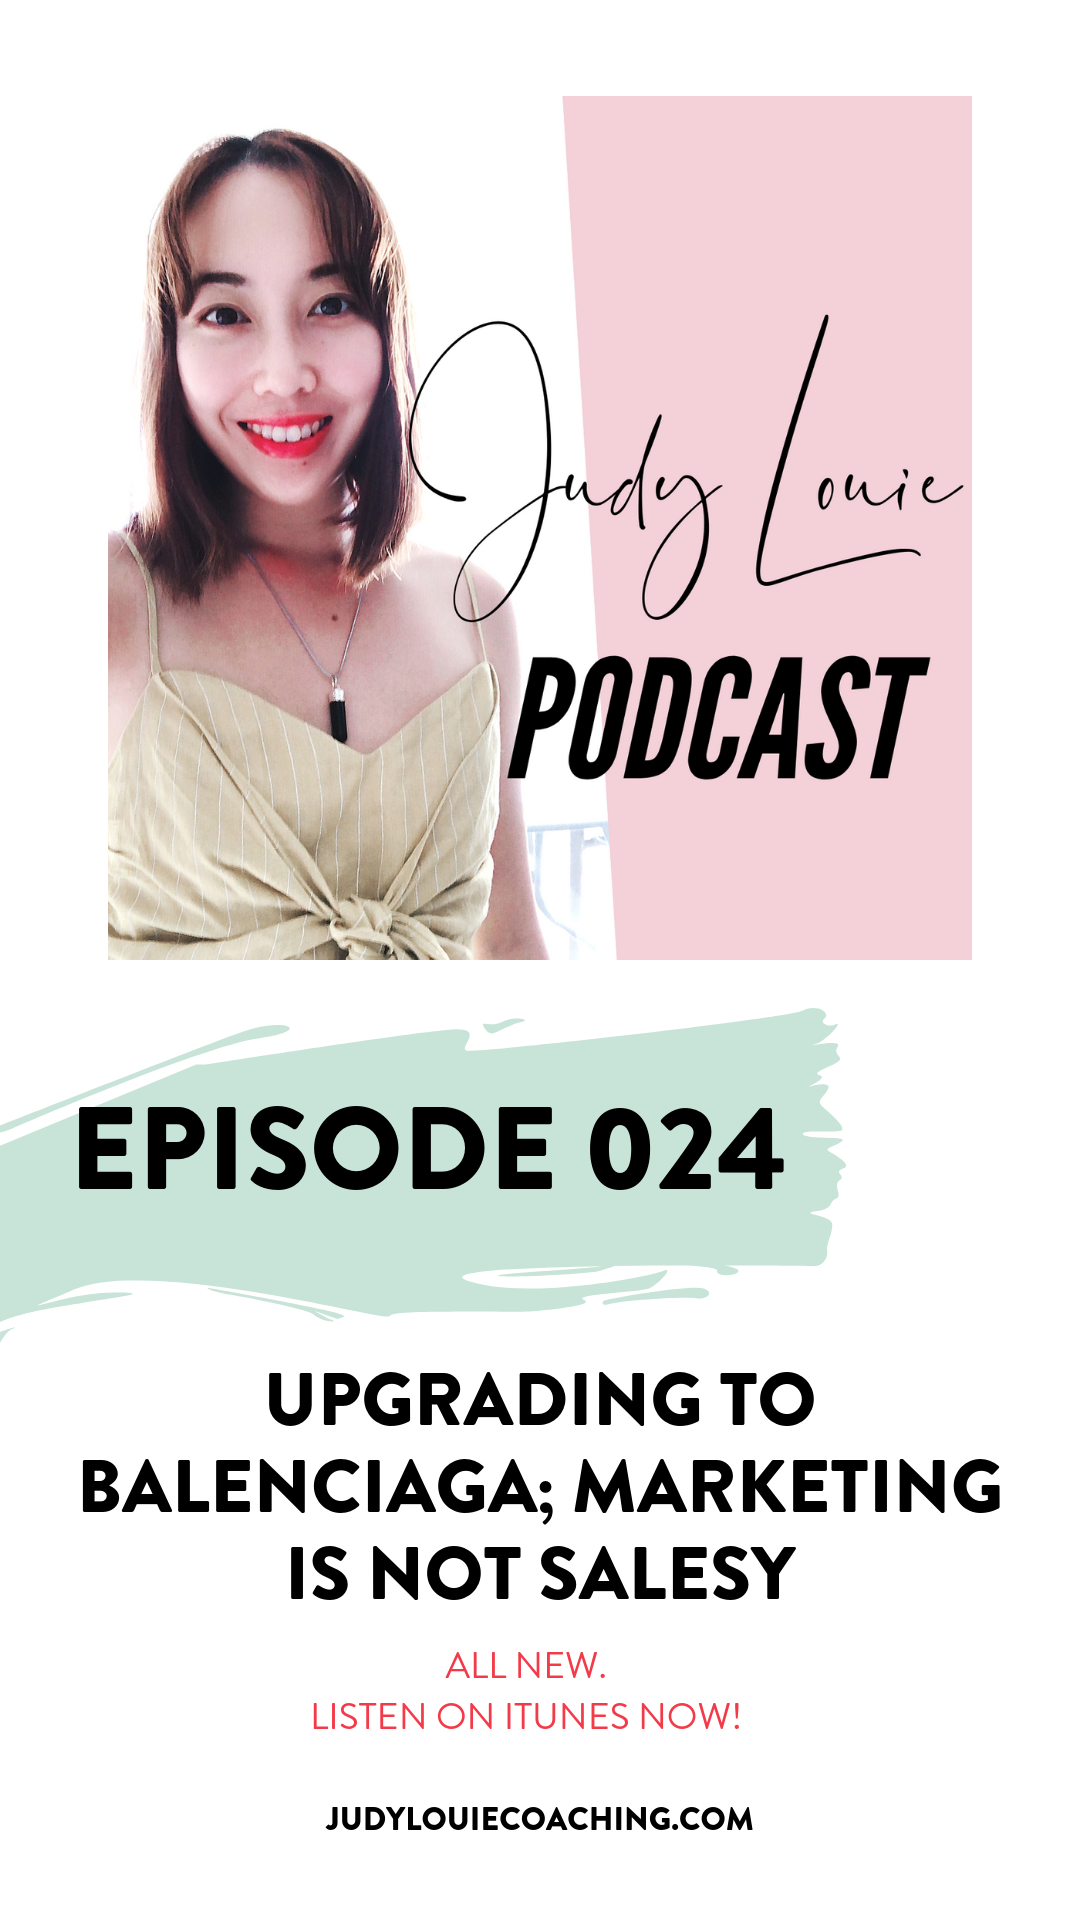 judy louie podcast - marketing is not salesy - ep024.png